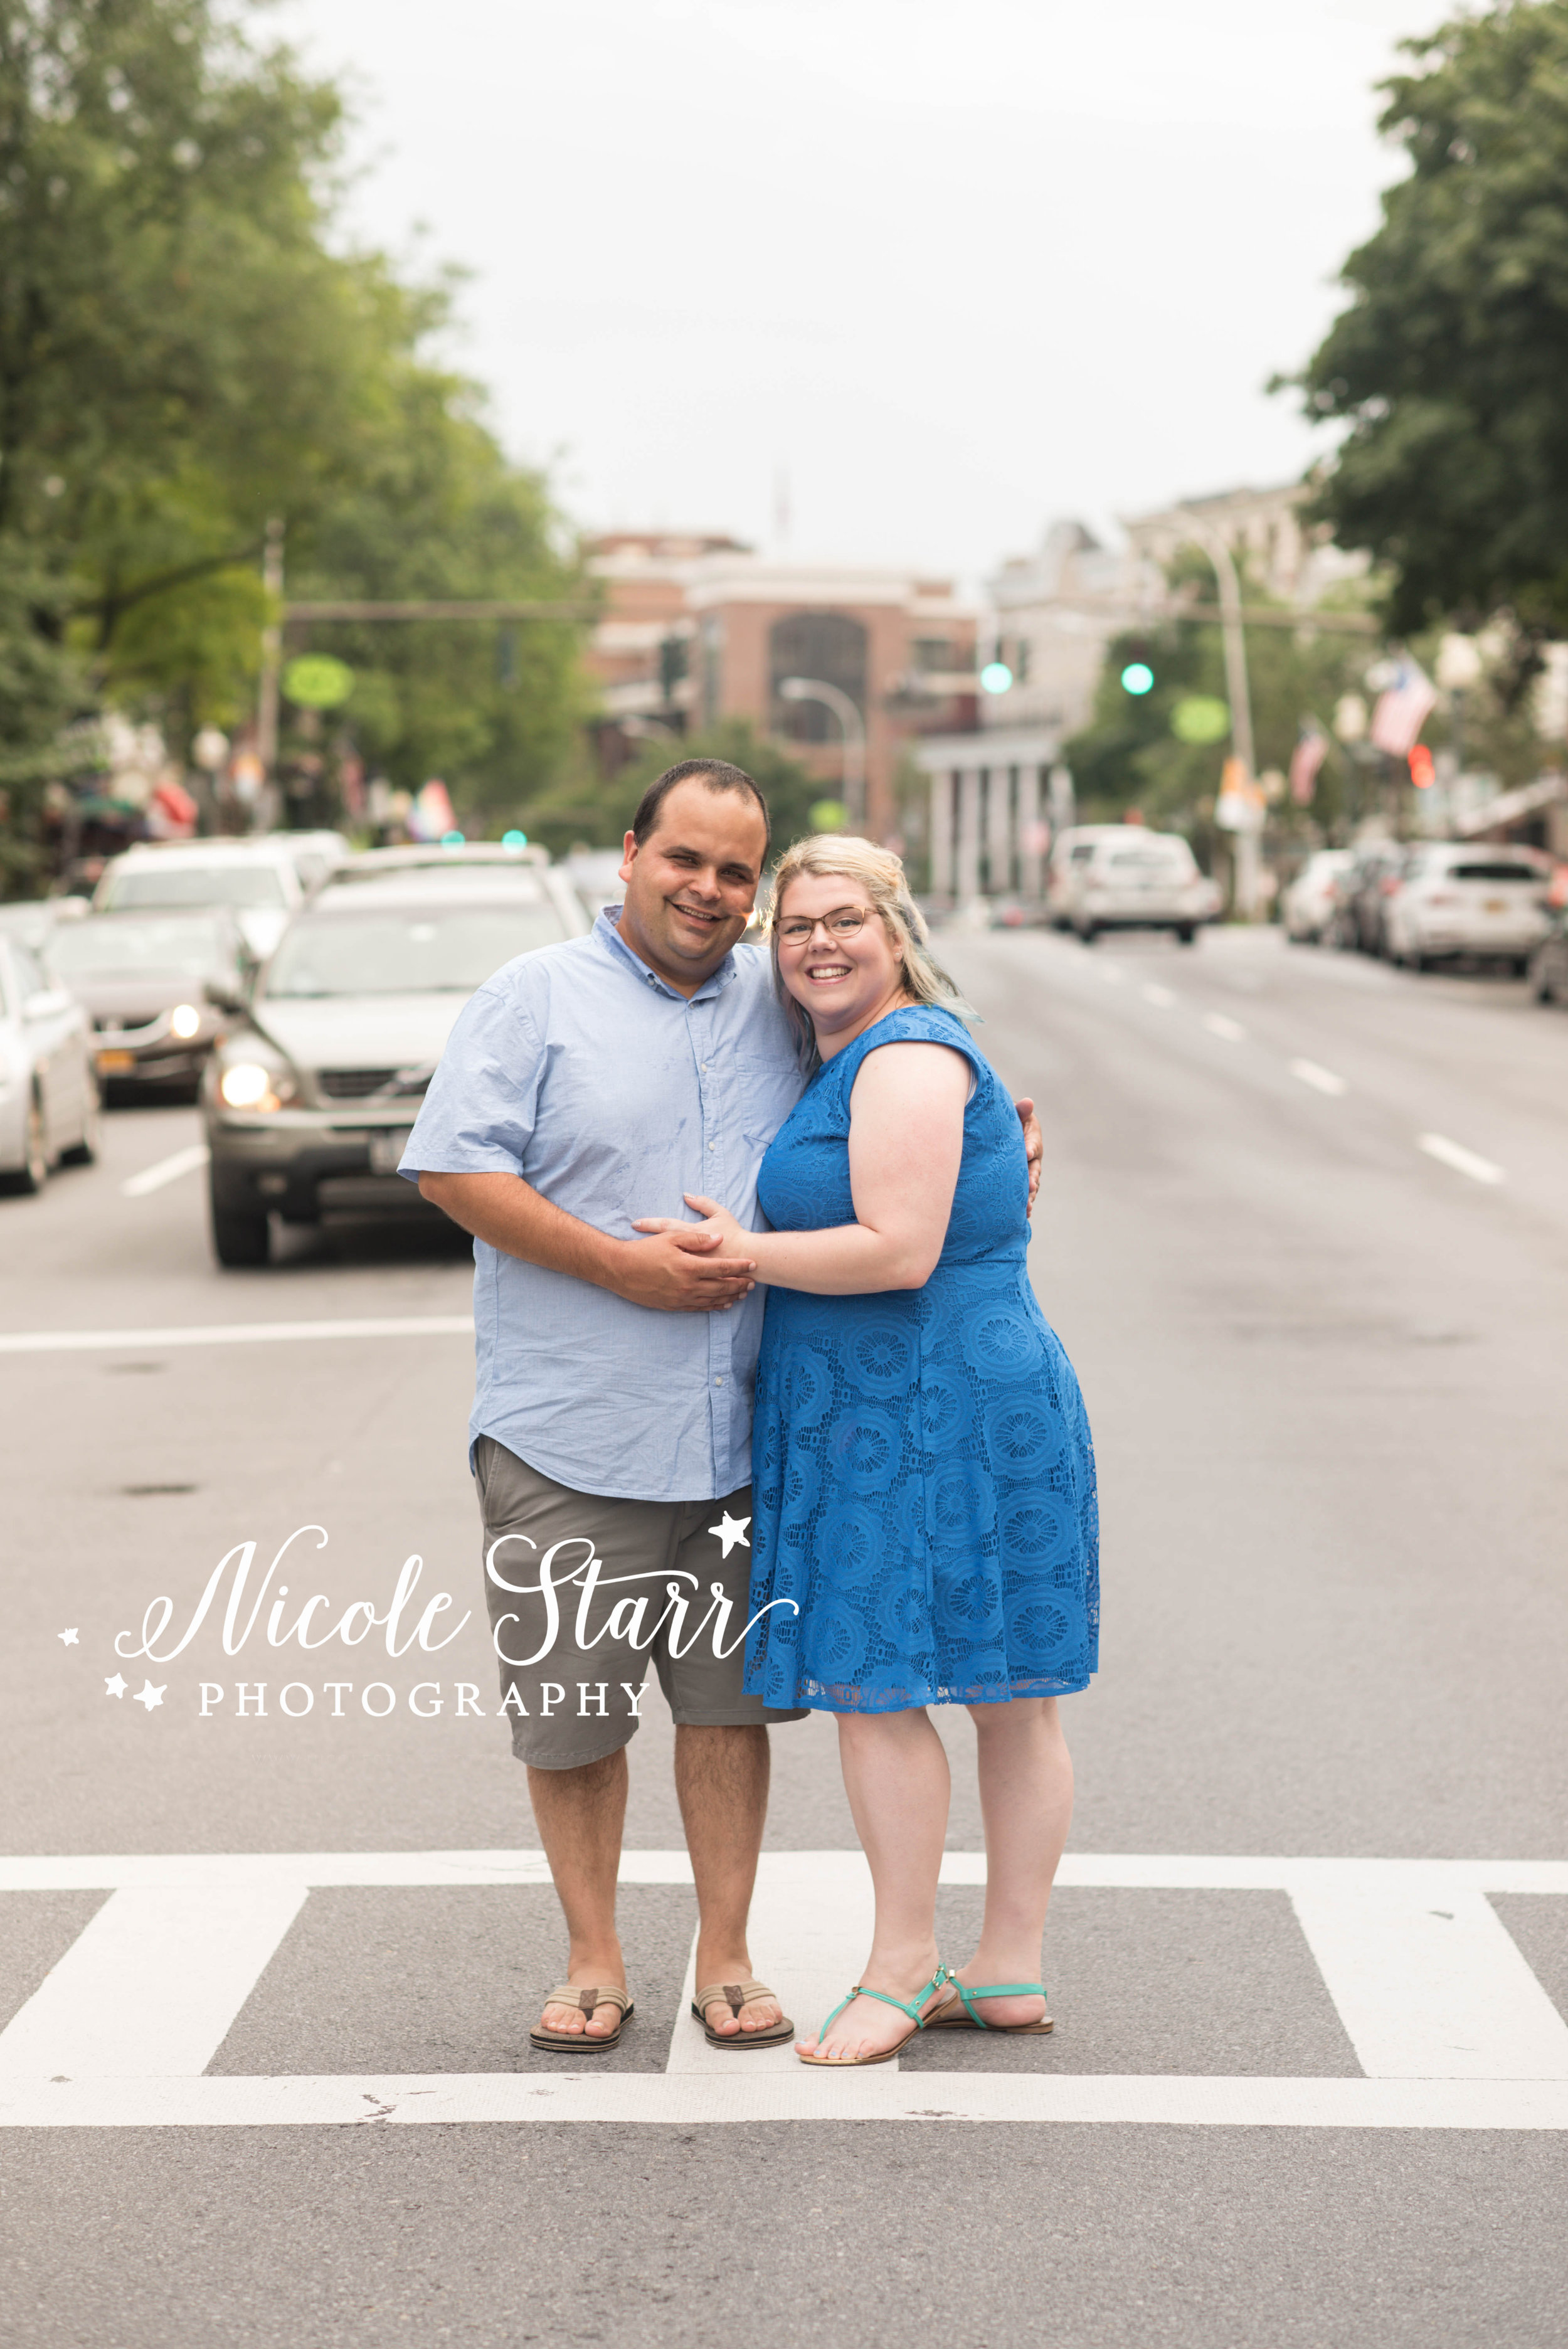 Nicole Starr Photography | Saratoga Springs Maternity Photographer | Boston Maternity Photographer | Upstate NY Maternity Photographer | Maternity Photographer | Maternity session